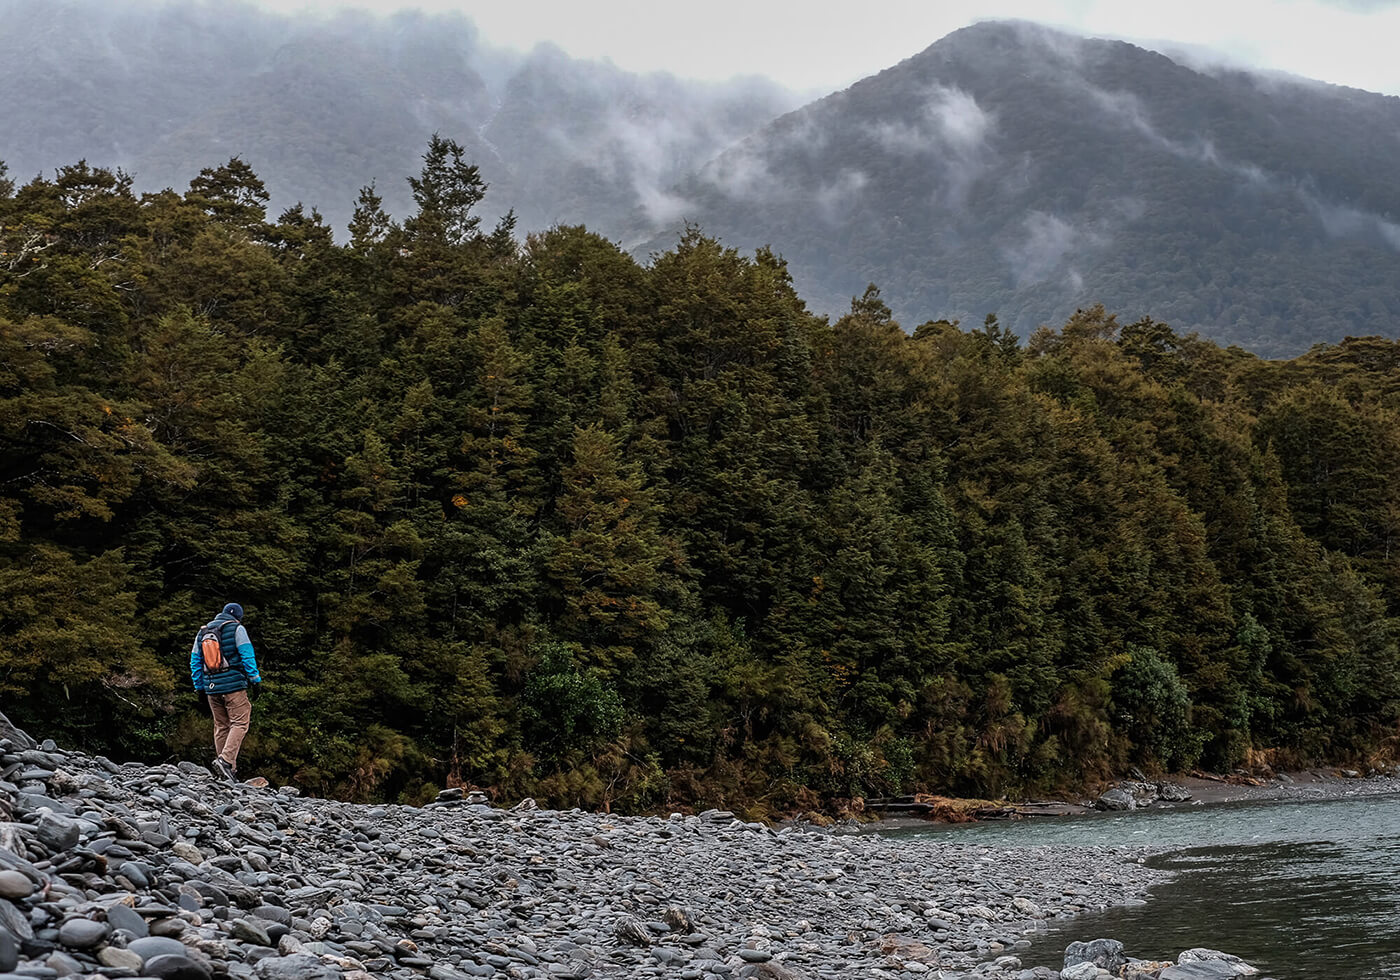 Collecting samples in the mountains New Zealand